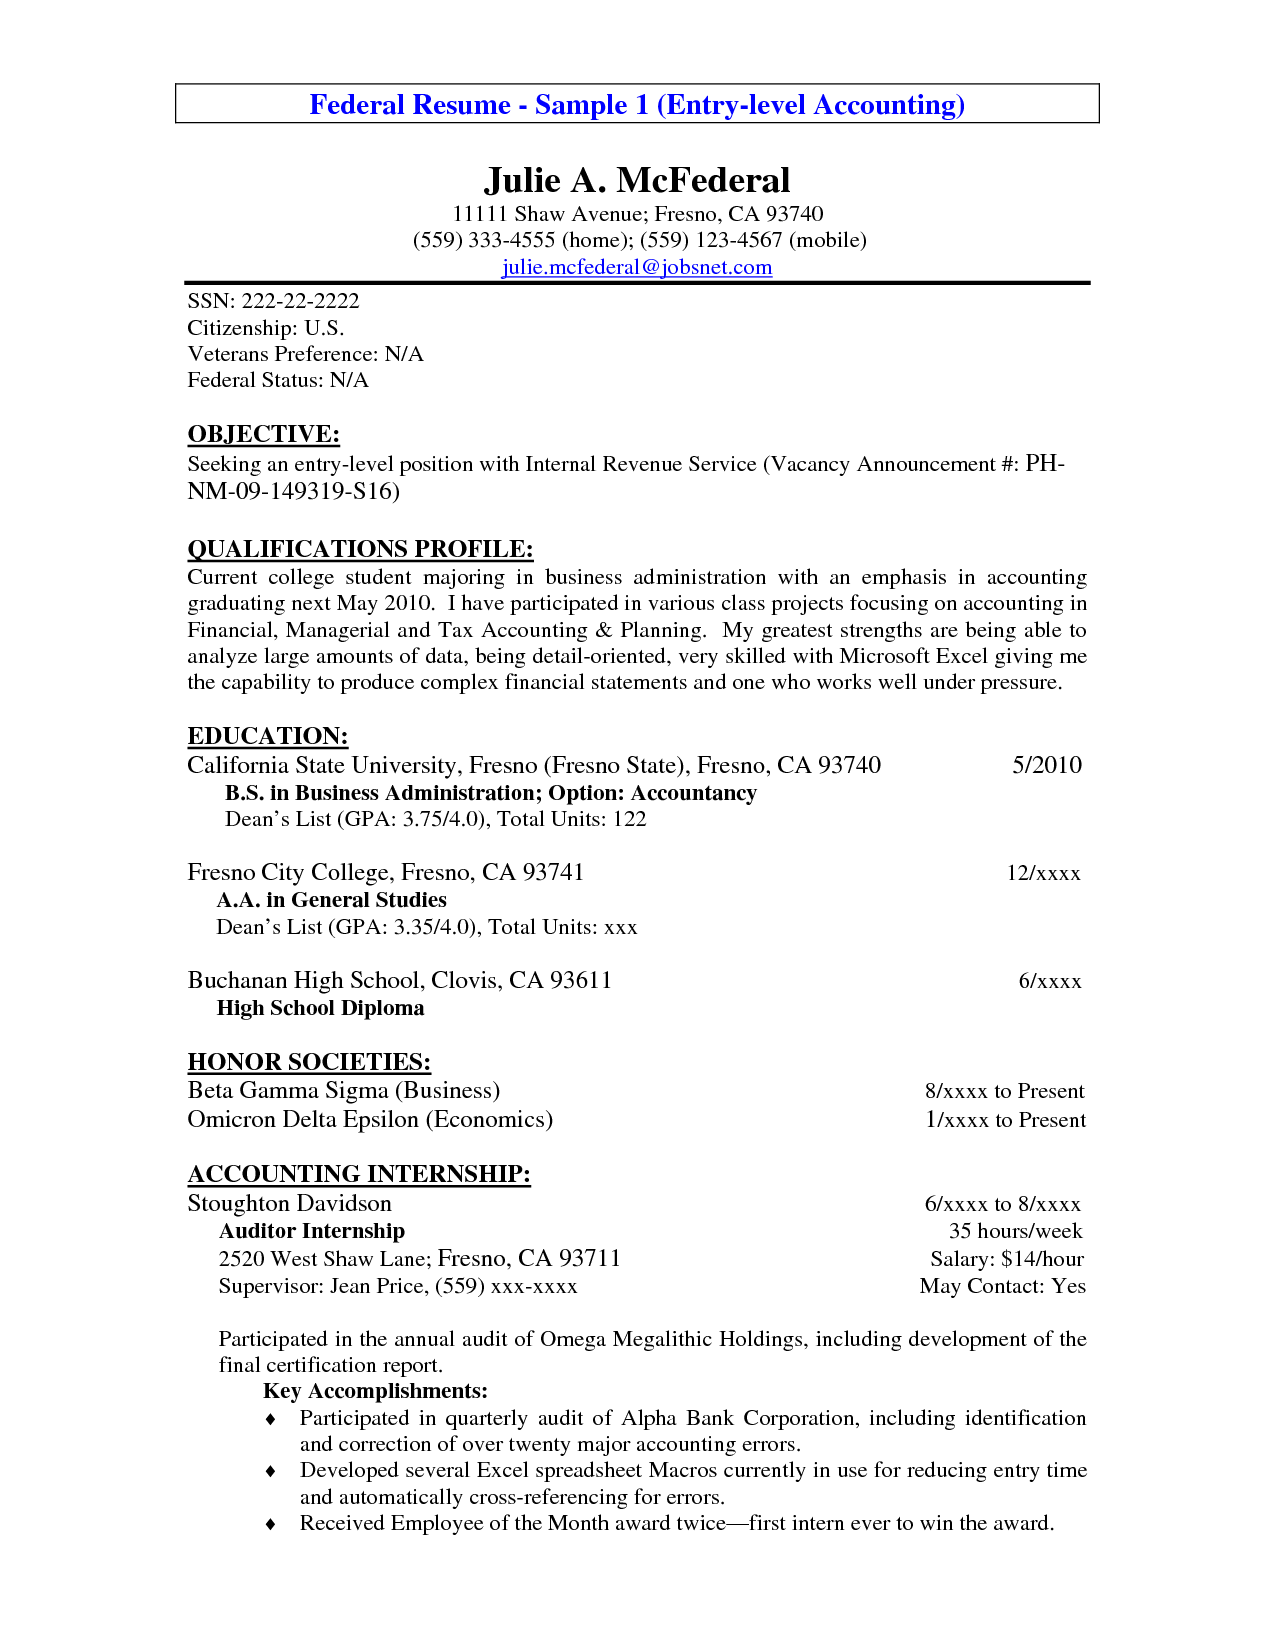 resume objective samples for entry level Dorit.mercatodos.co